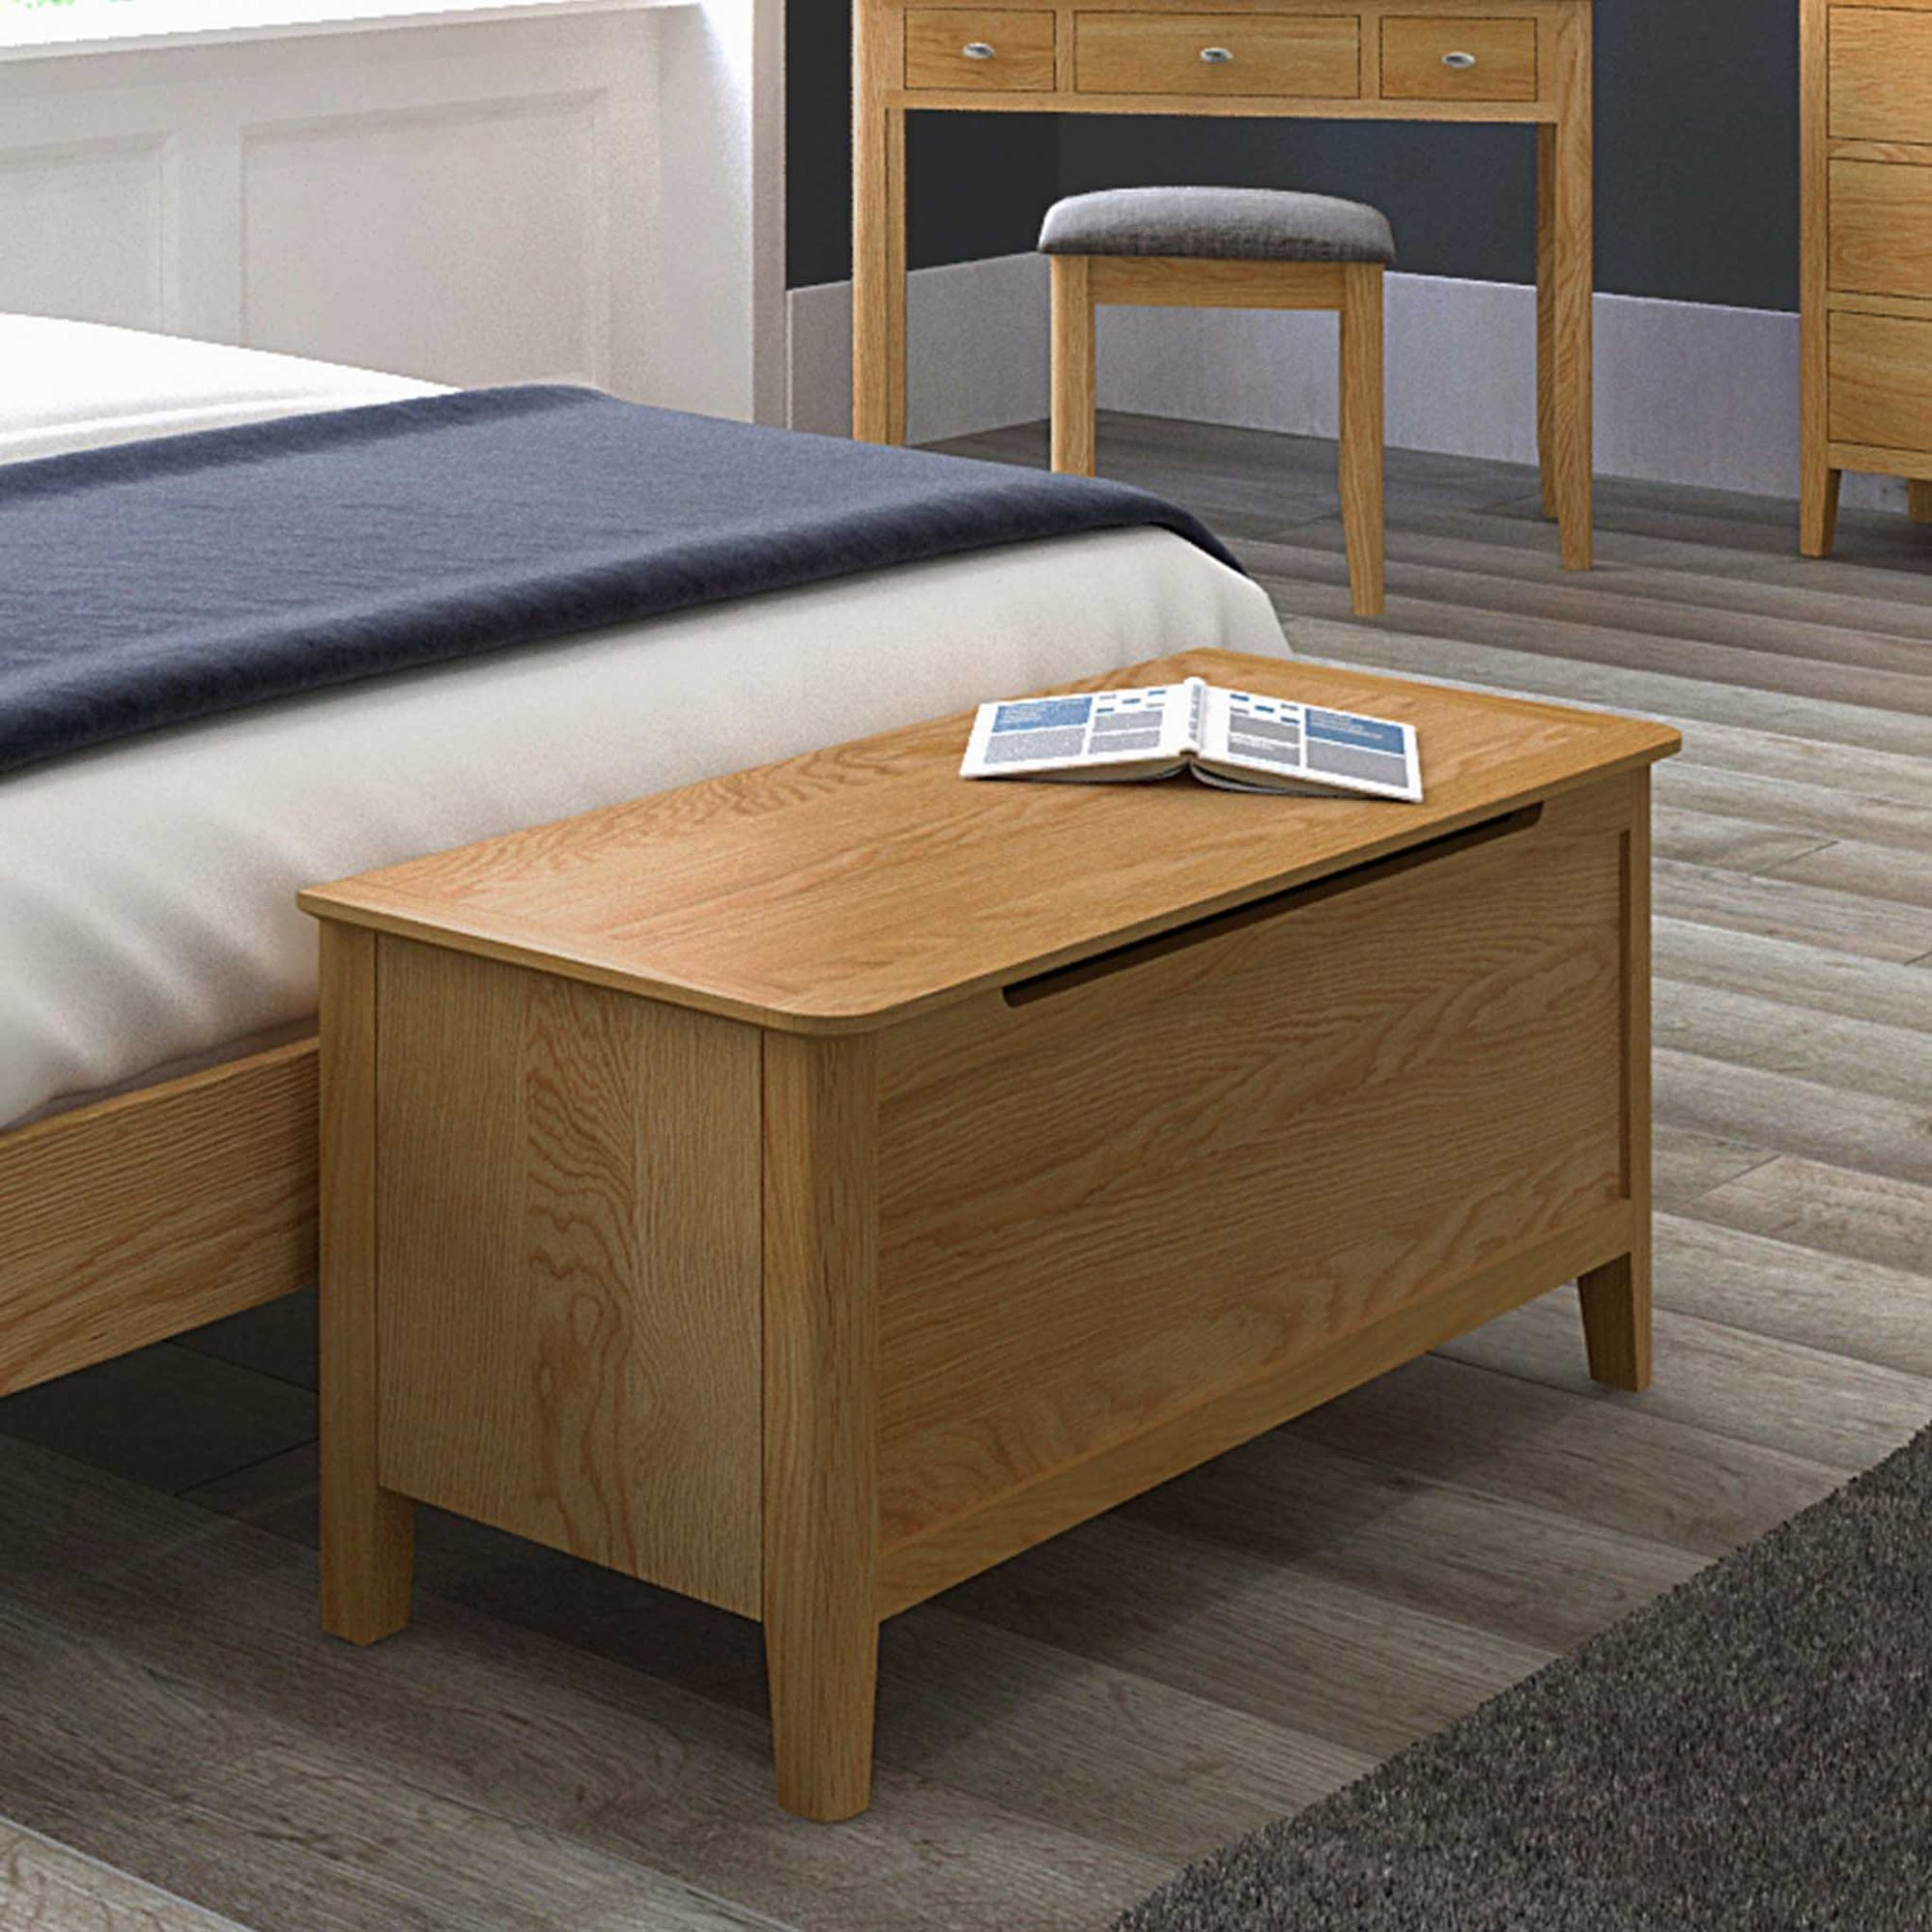 Blanket-Toy-Boxes